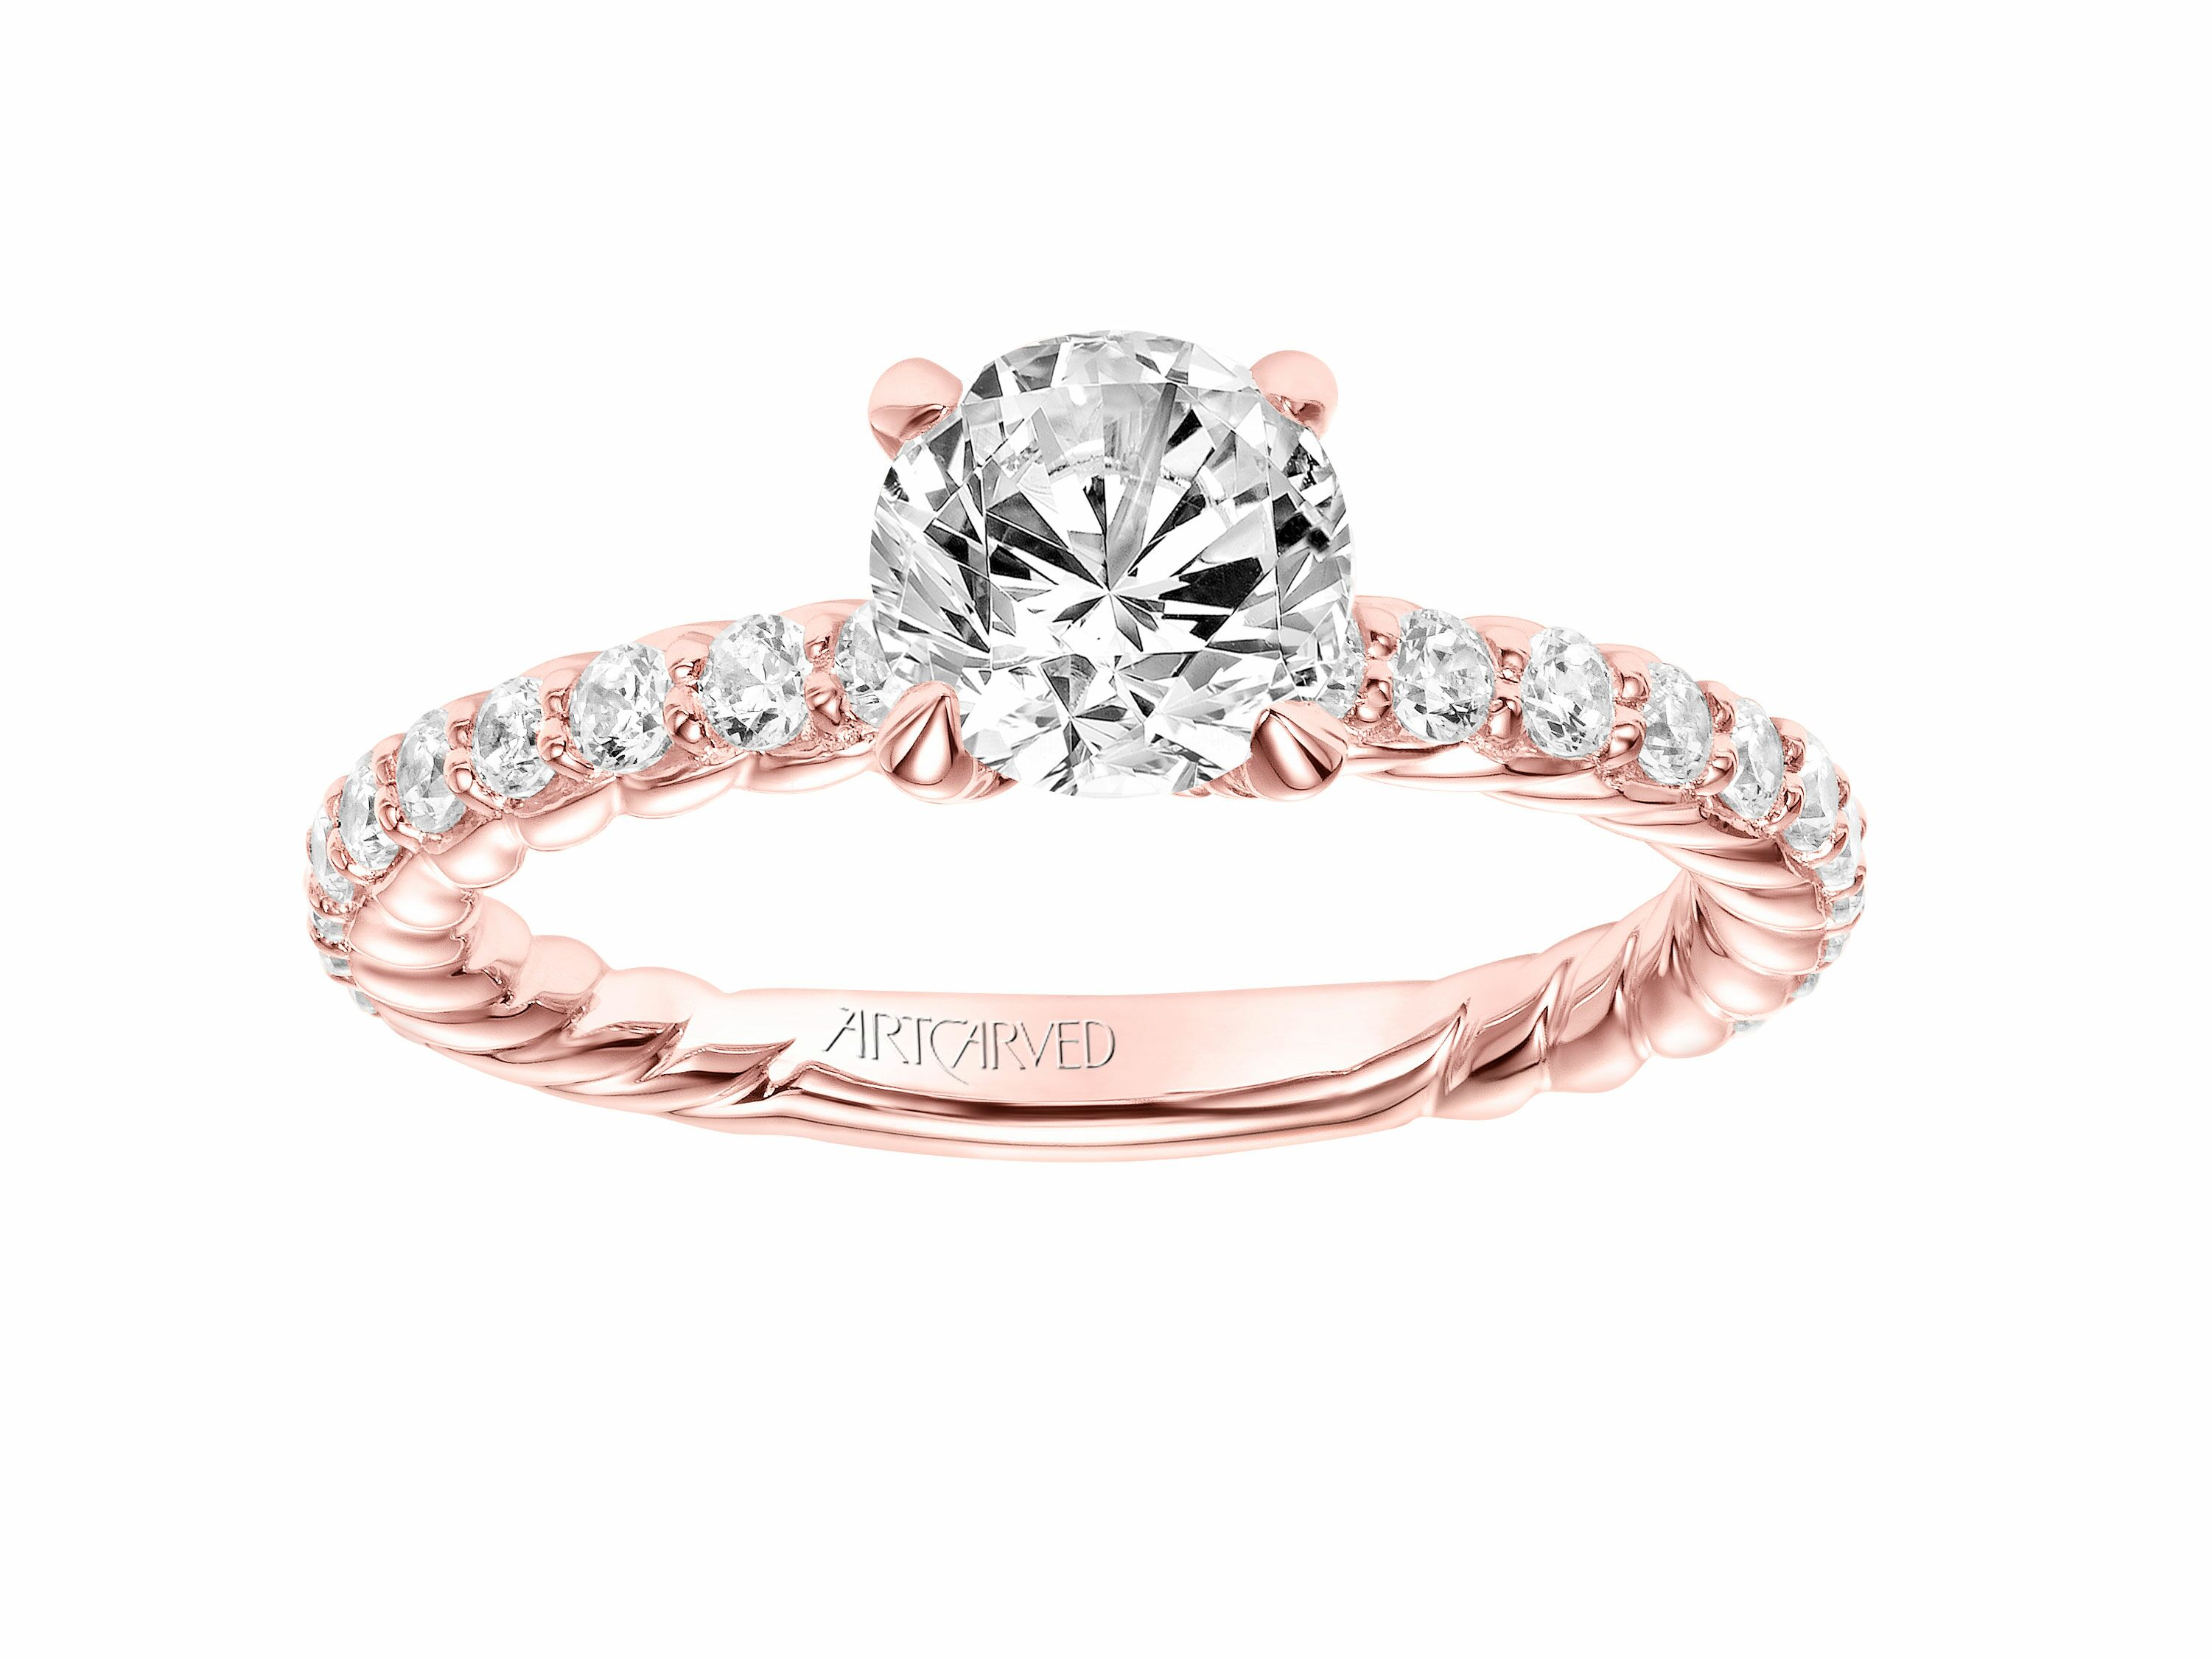 jewelers ang category kay scott josephk engagement rings product designers